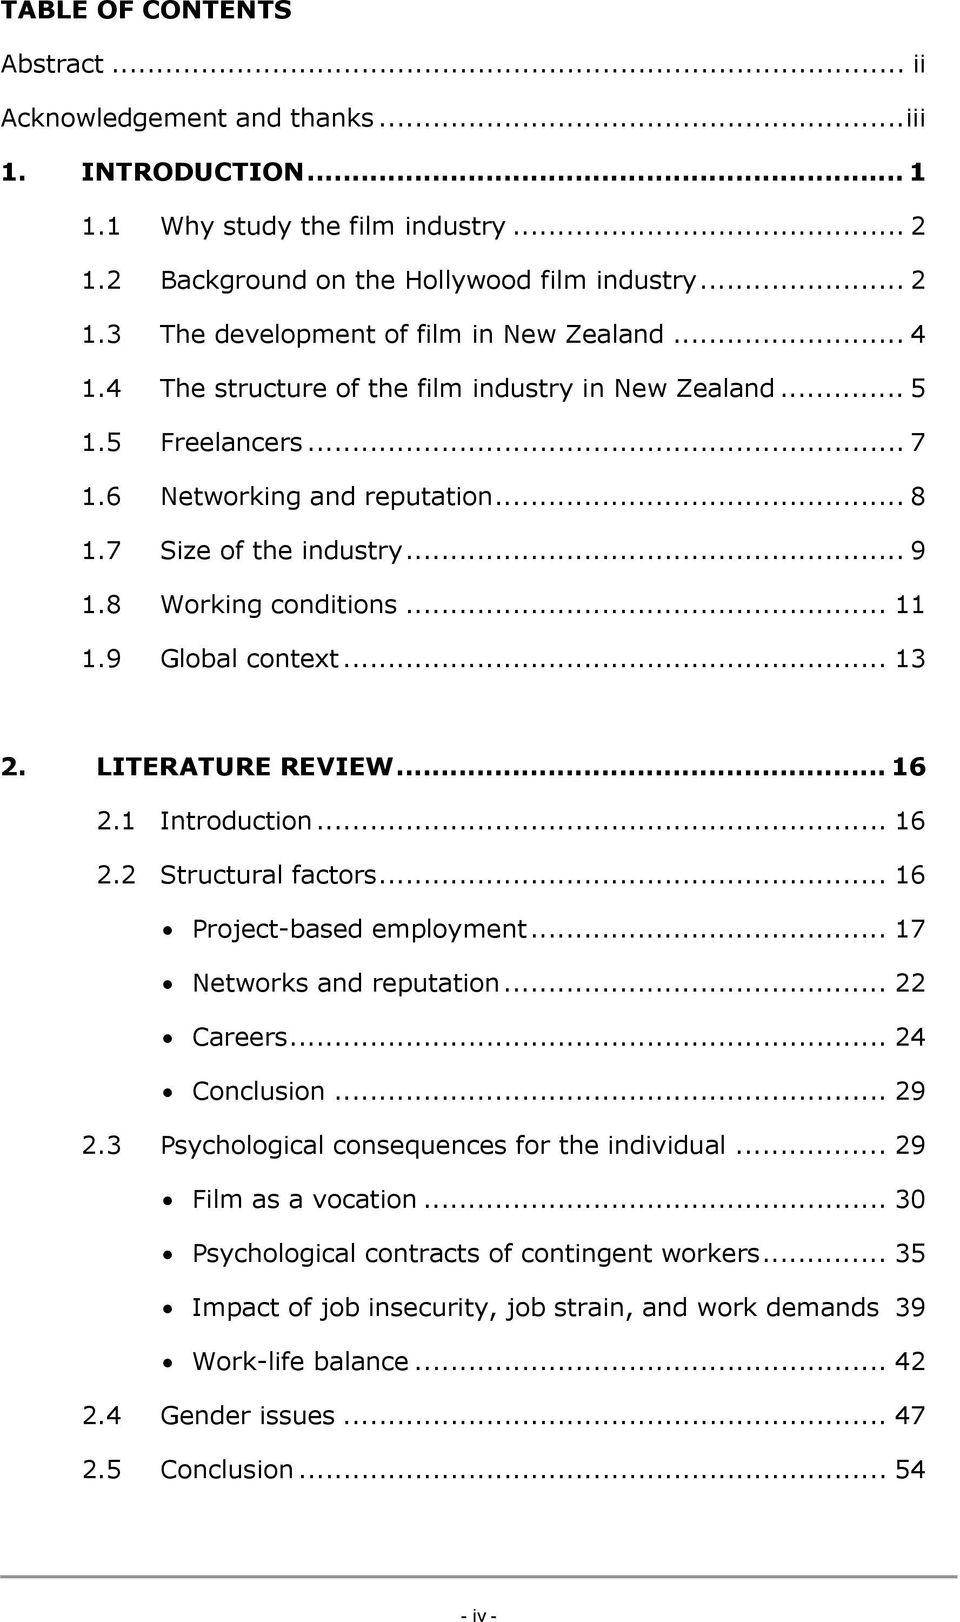 .. 13 2. LITERATURE REVIEW... 16 2.1 Introduction... 16 2.2 Structural factors... 16 Project-based employment... 17 Networks and reputation... 22 Careers... 24 Conclusion... 29 2.